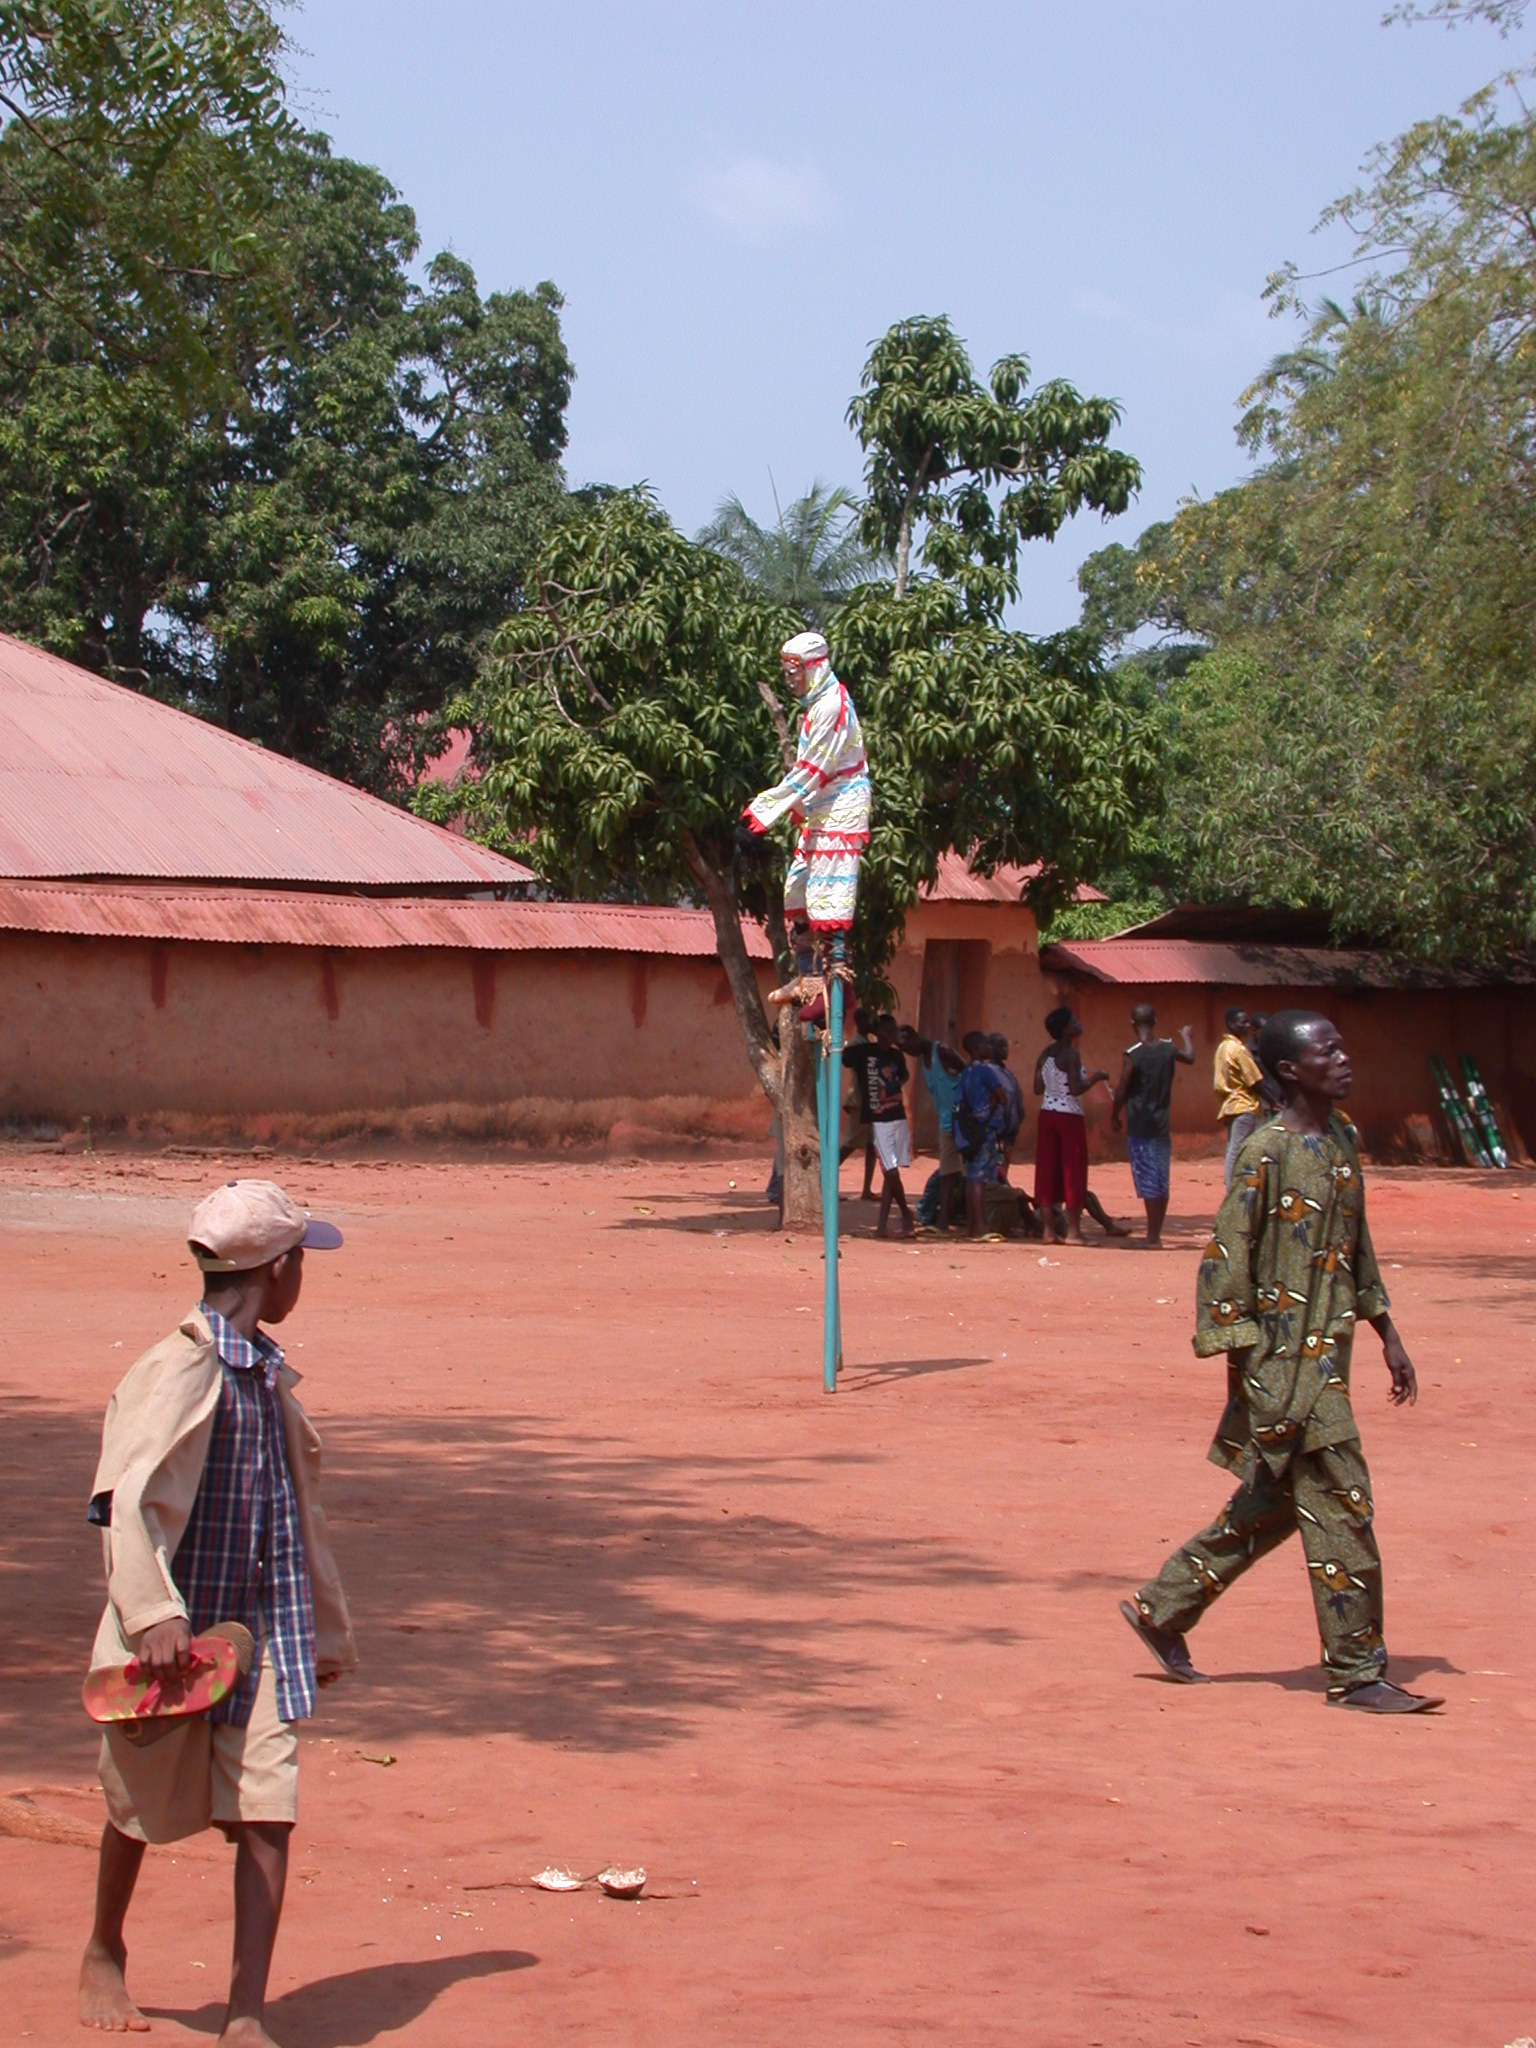 Stiltwalker, Danxome Festival Celebrations at Palace Grounds, Abomey History Museum, Abomey, Benin